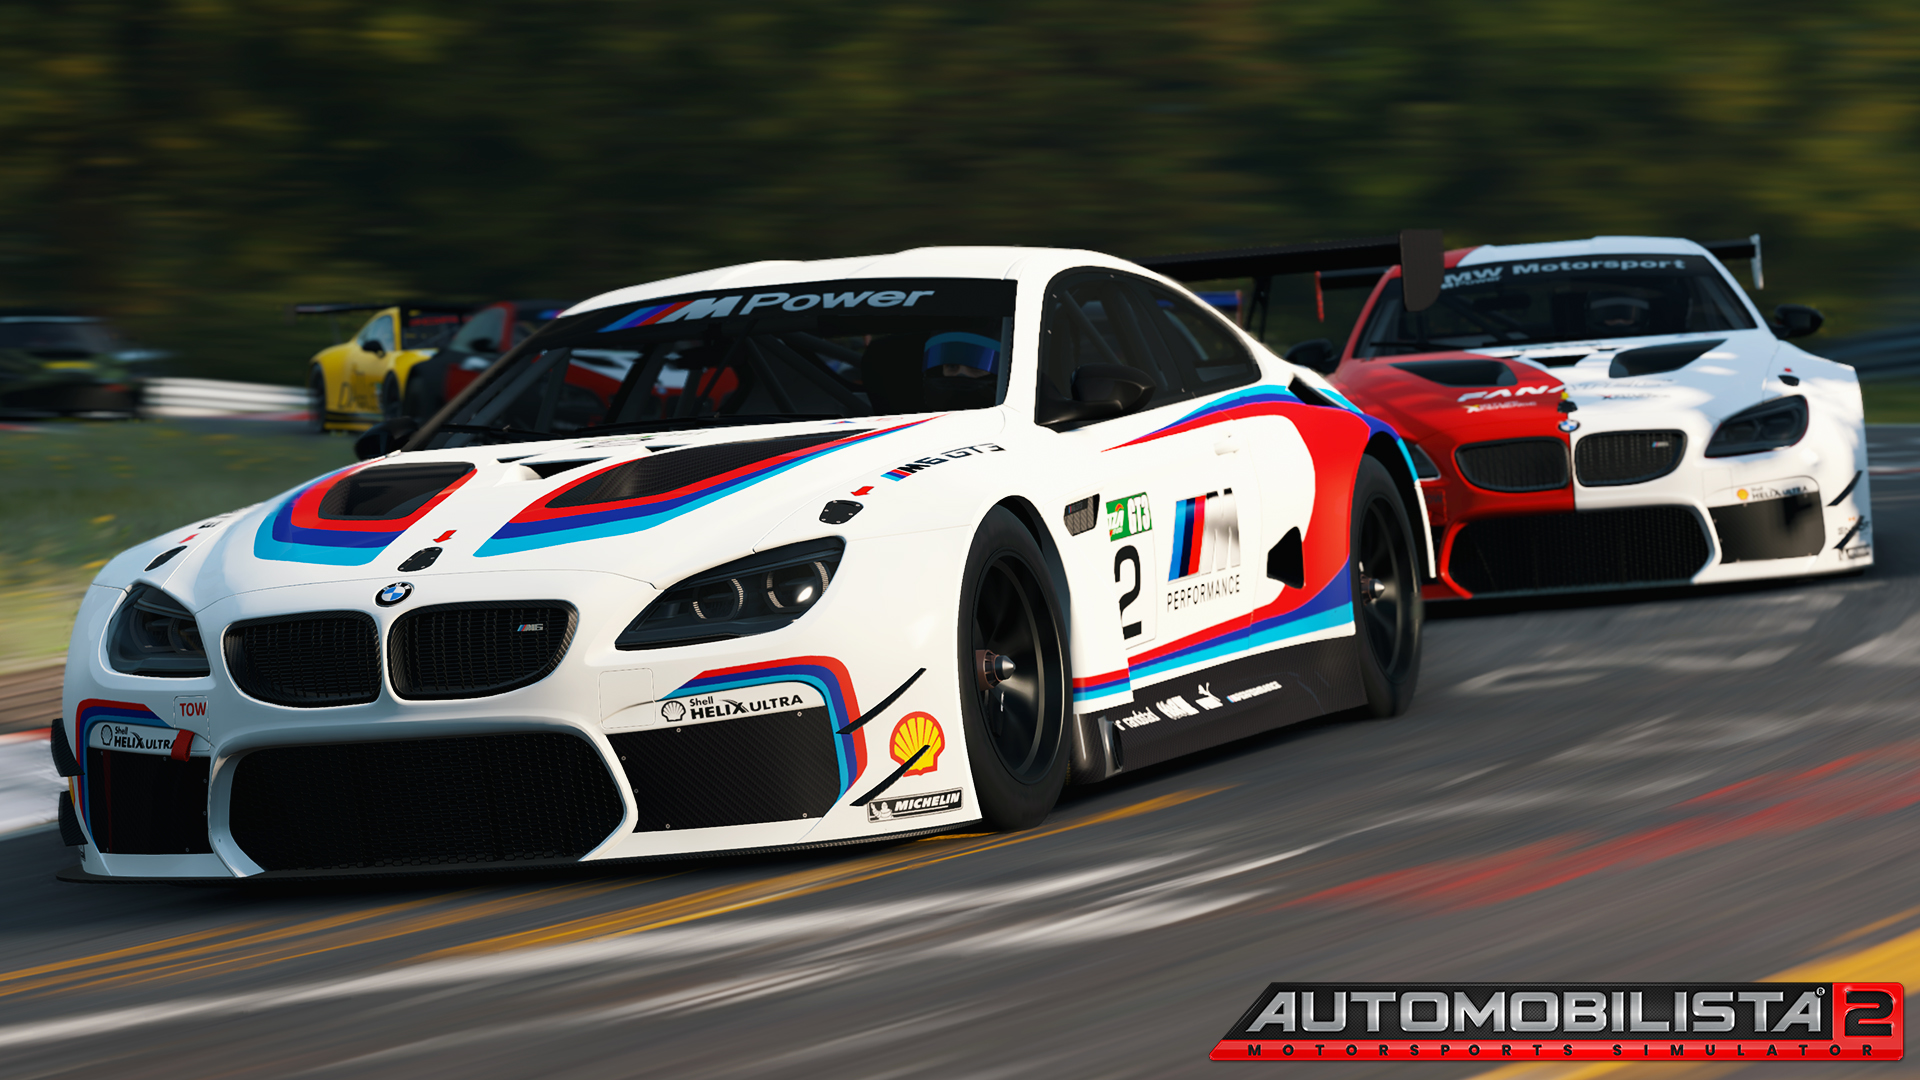 Automobilista 2 v1.0.6.0 Now Available, Adds BMW M6, Improves A.I.